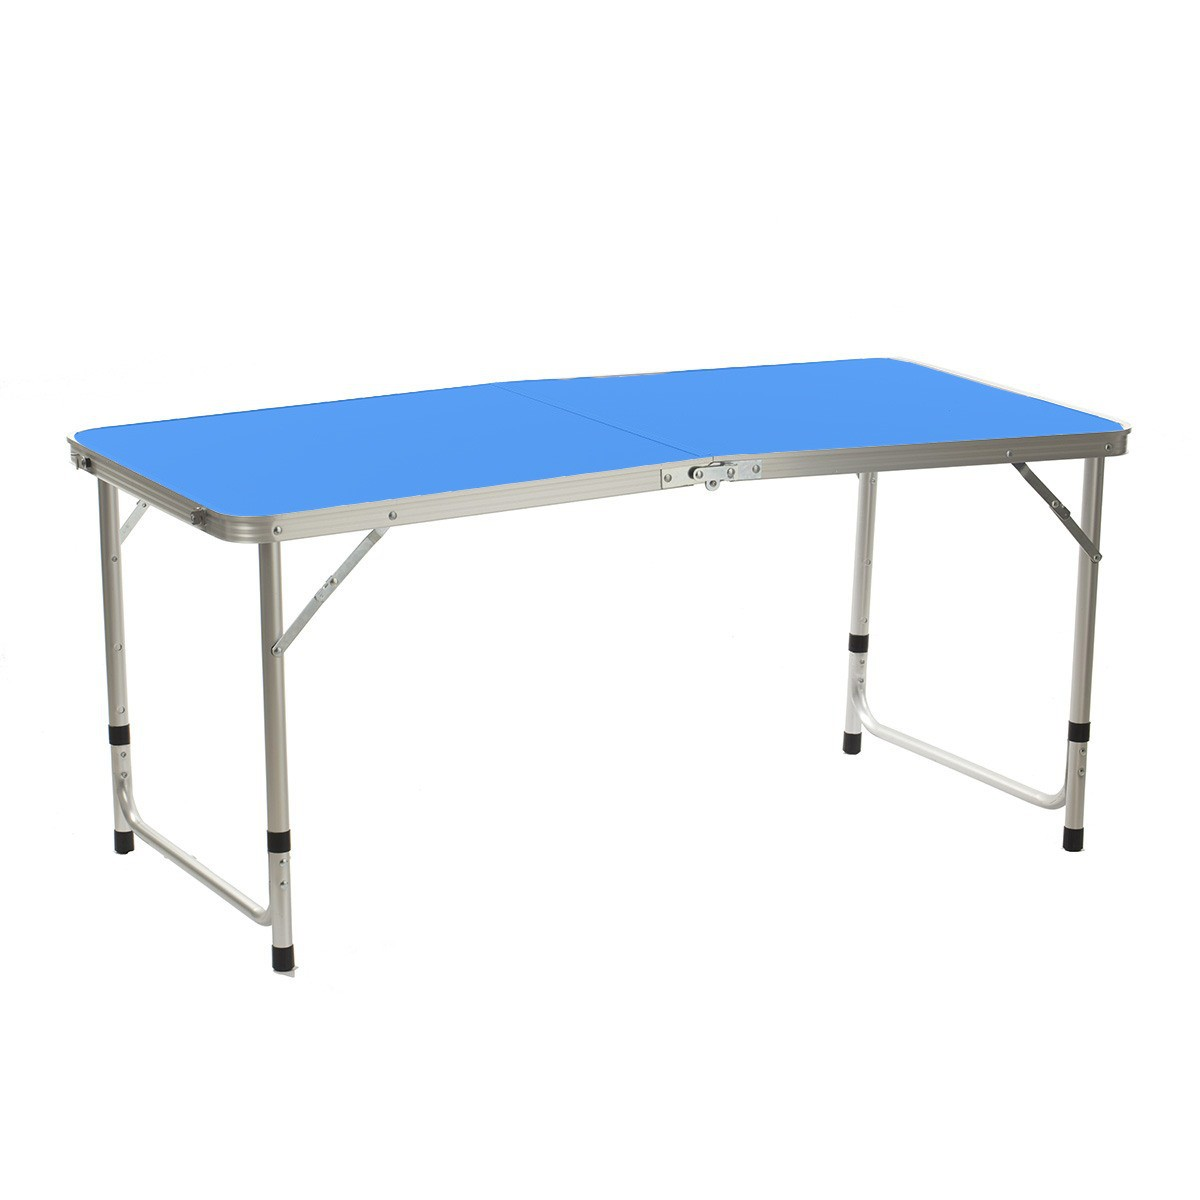 Table Aluminium Pliante Table Pliante Aluminium Bleue